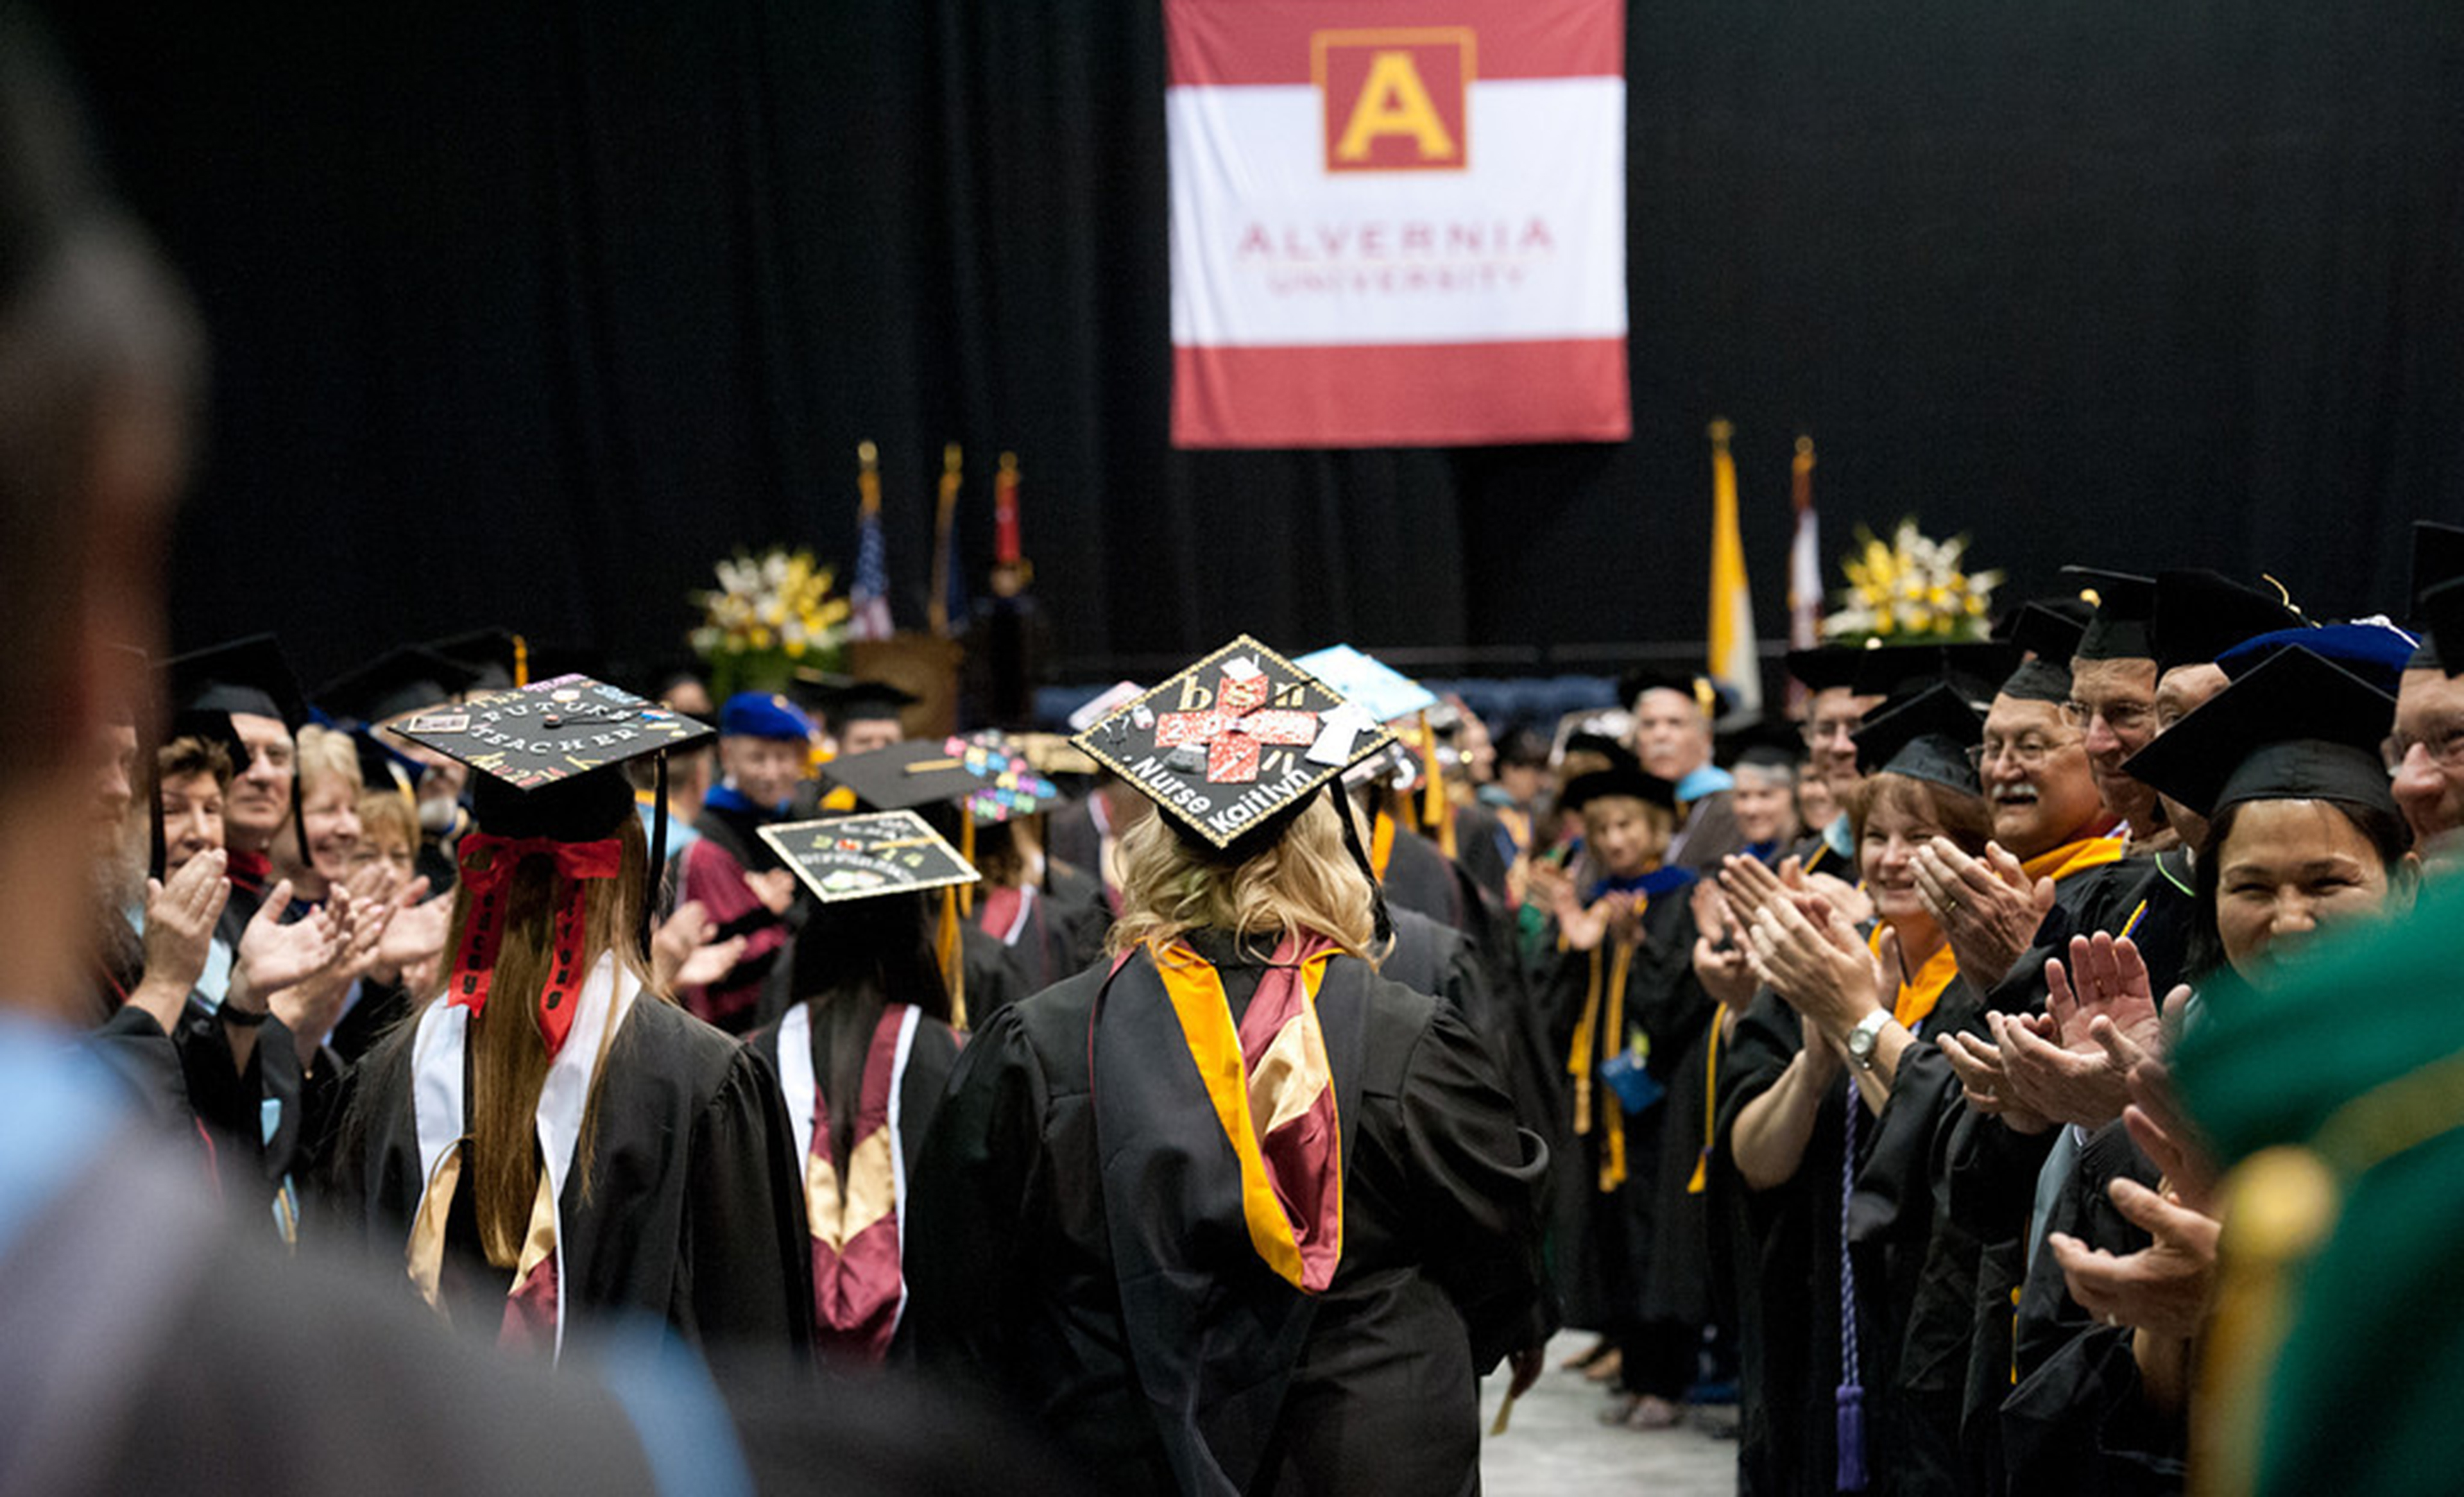 Alvernia graduation ceremony